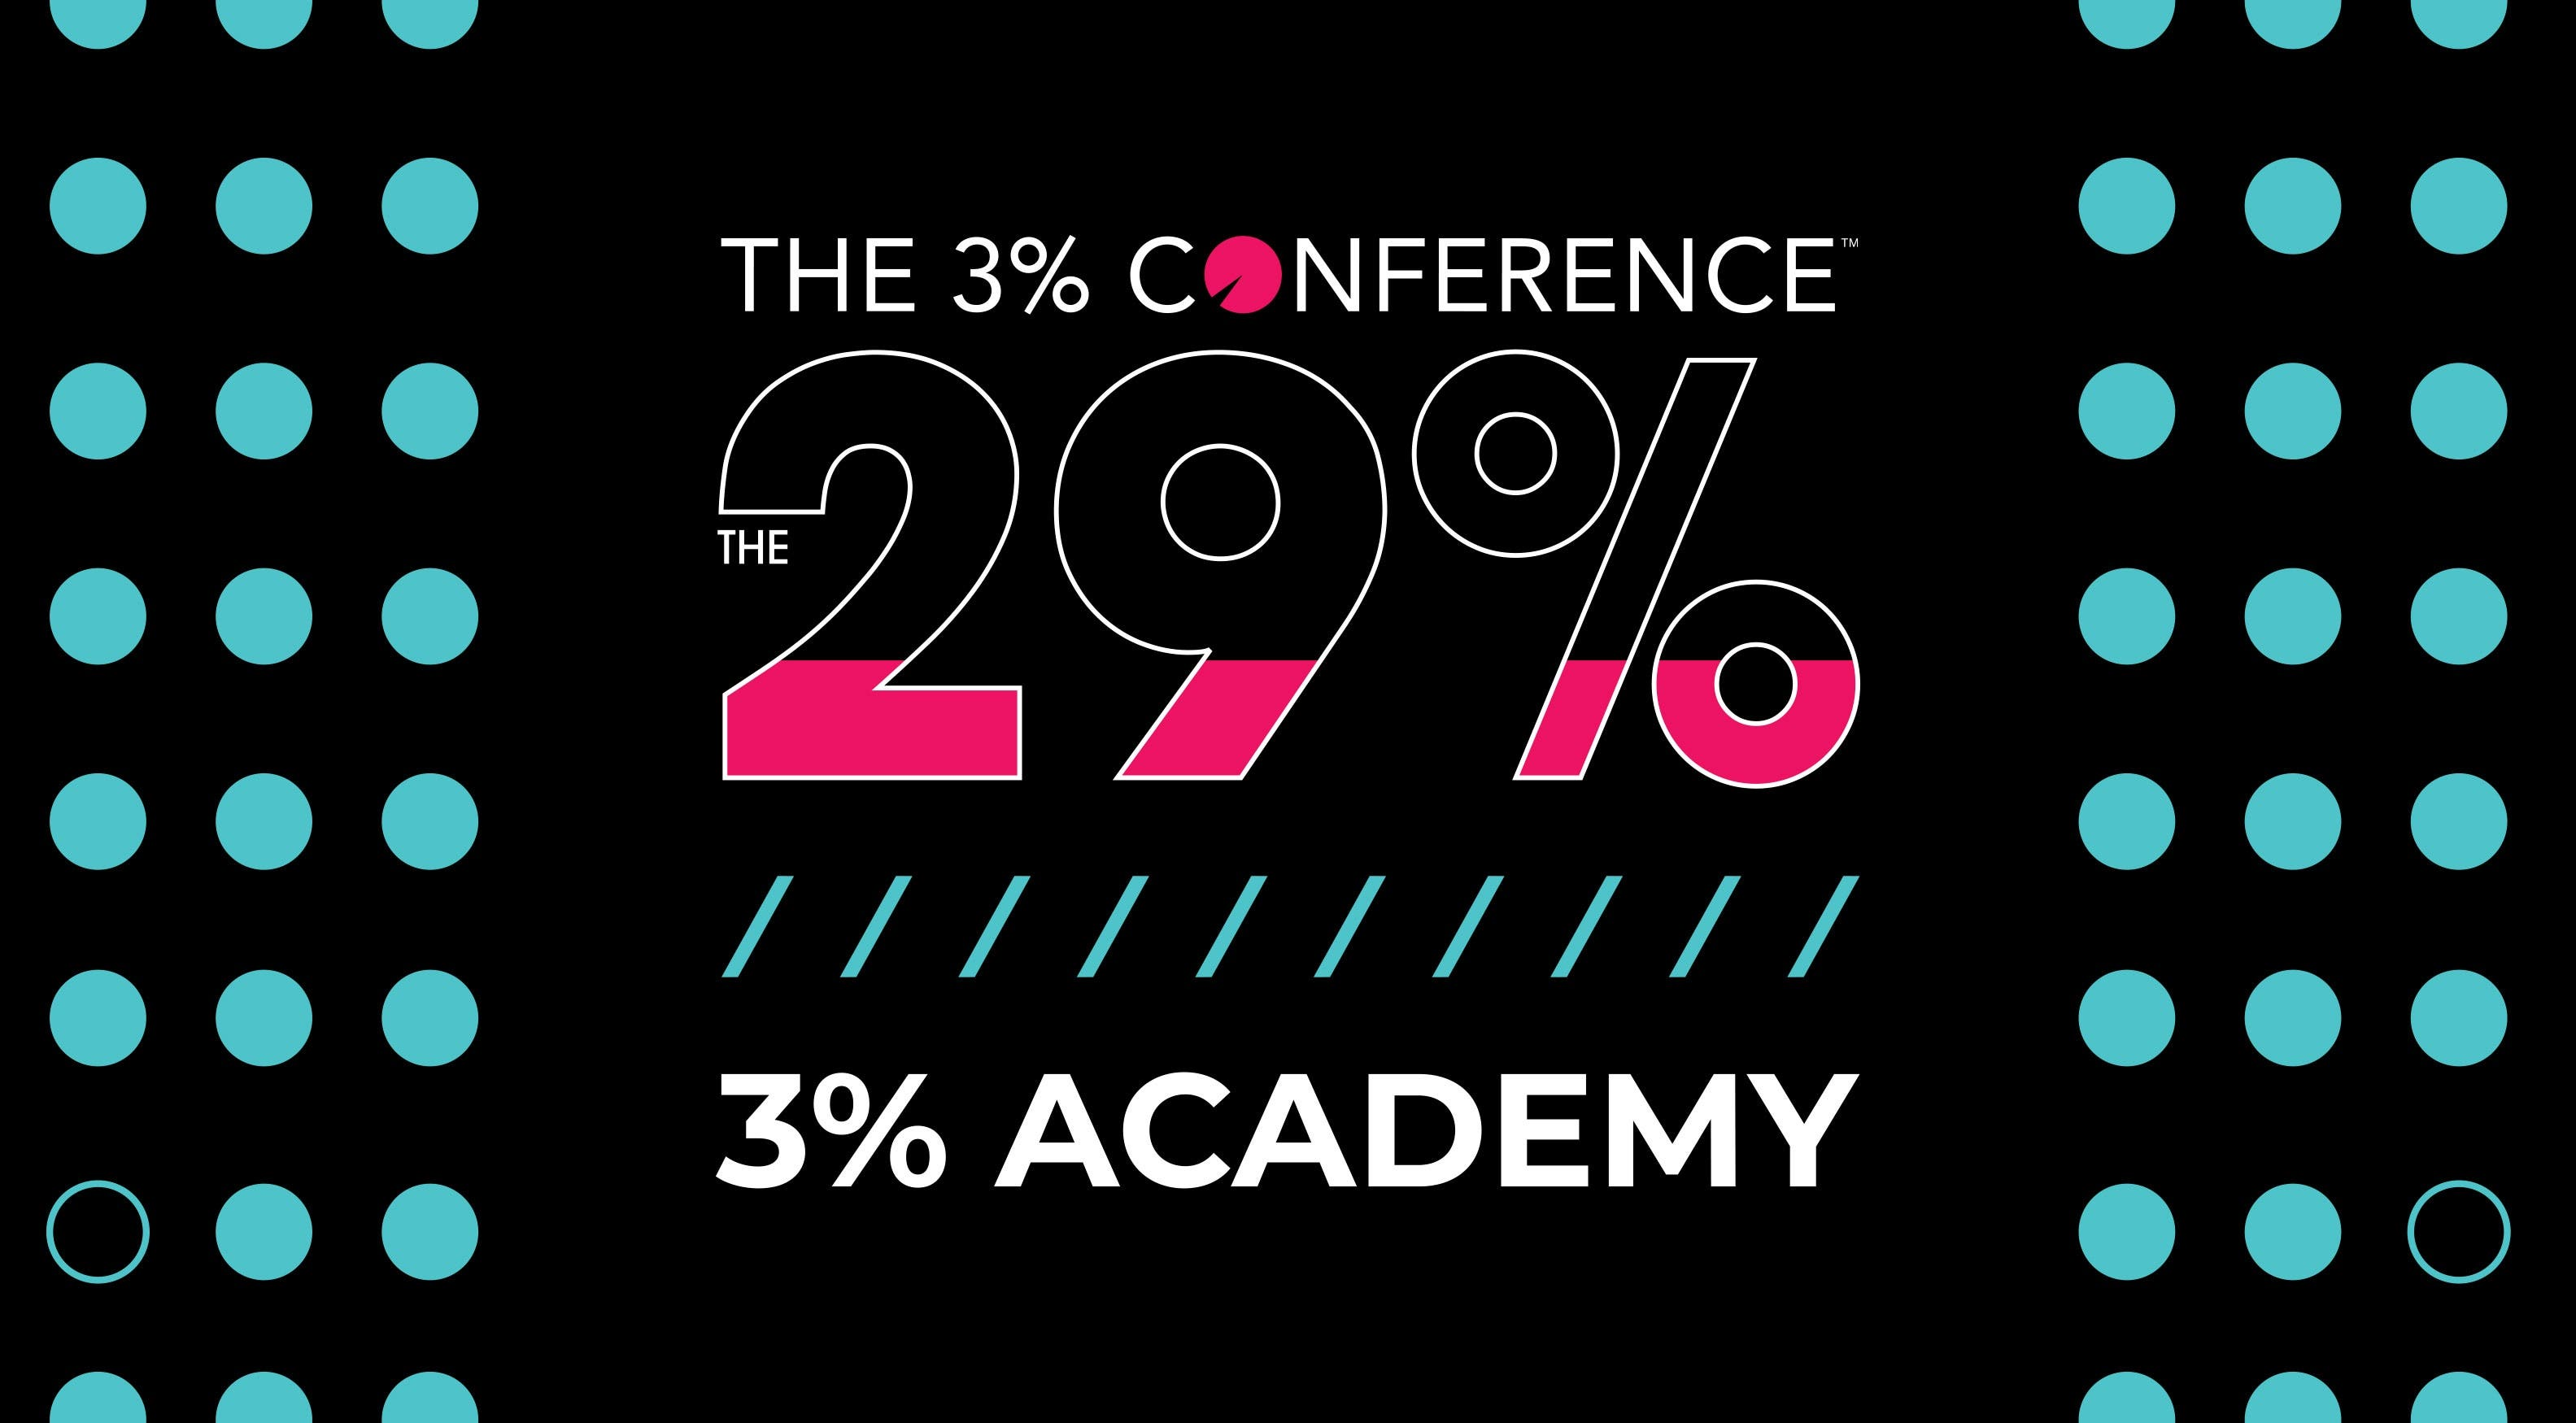 3% Academy - The 29%  Agency Edition